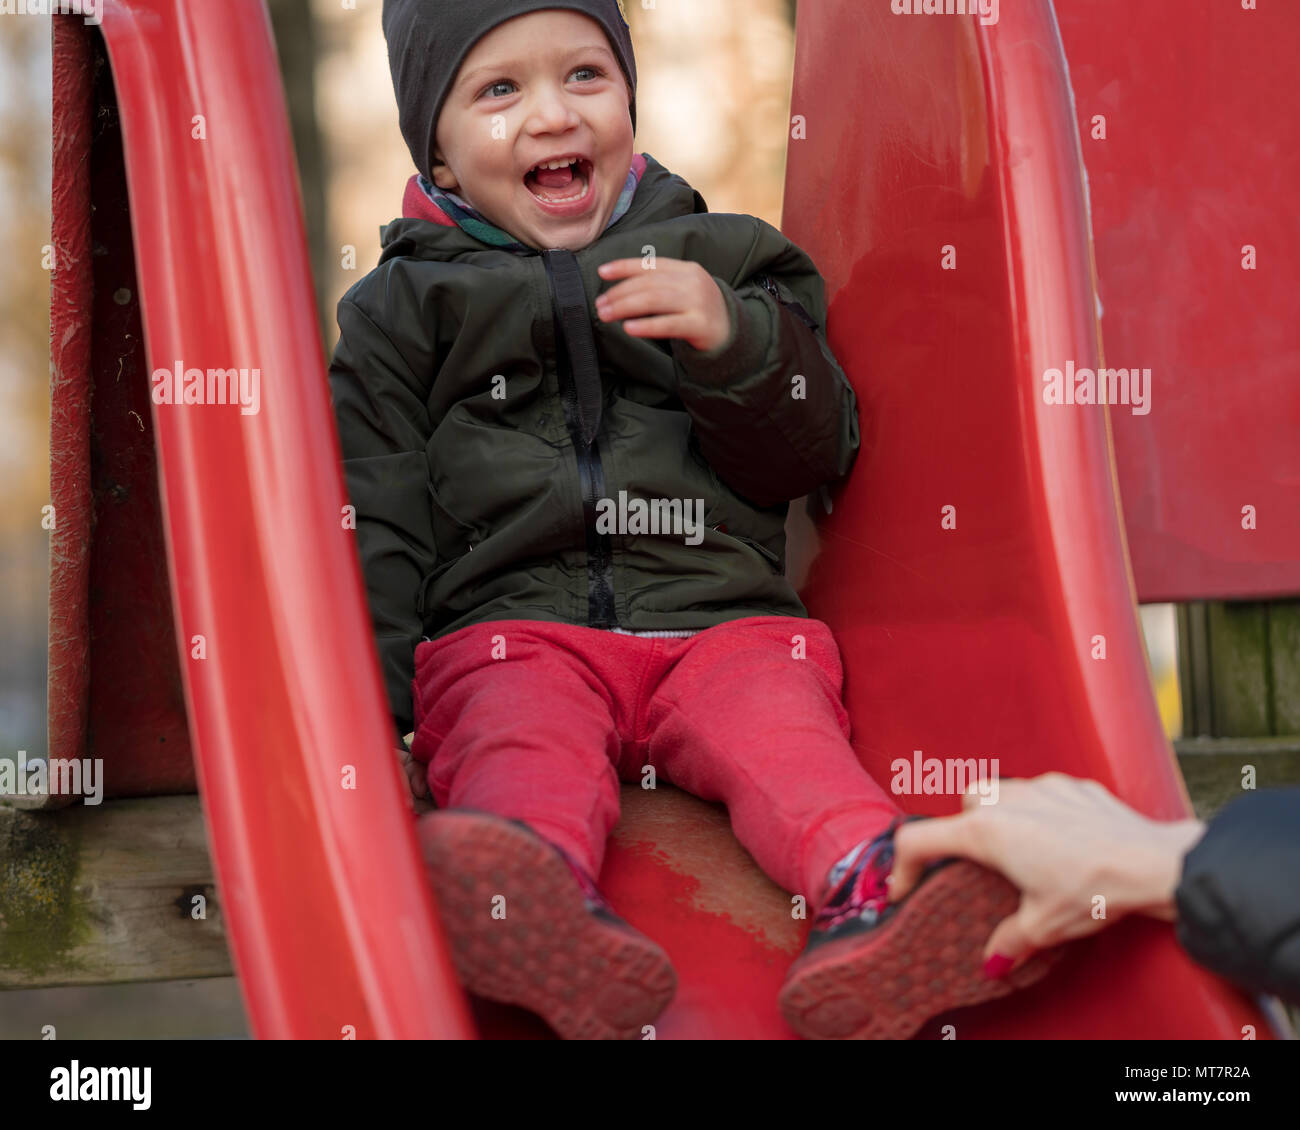 Happy kid boy with a cap laughing loudly sitting on a children slide at kid's playground. Active childhood concept - Stock Image